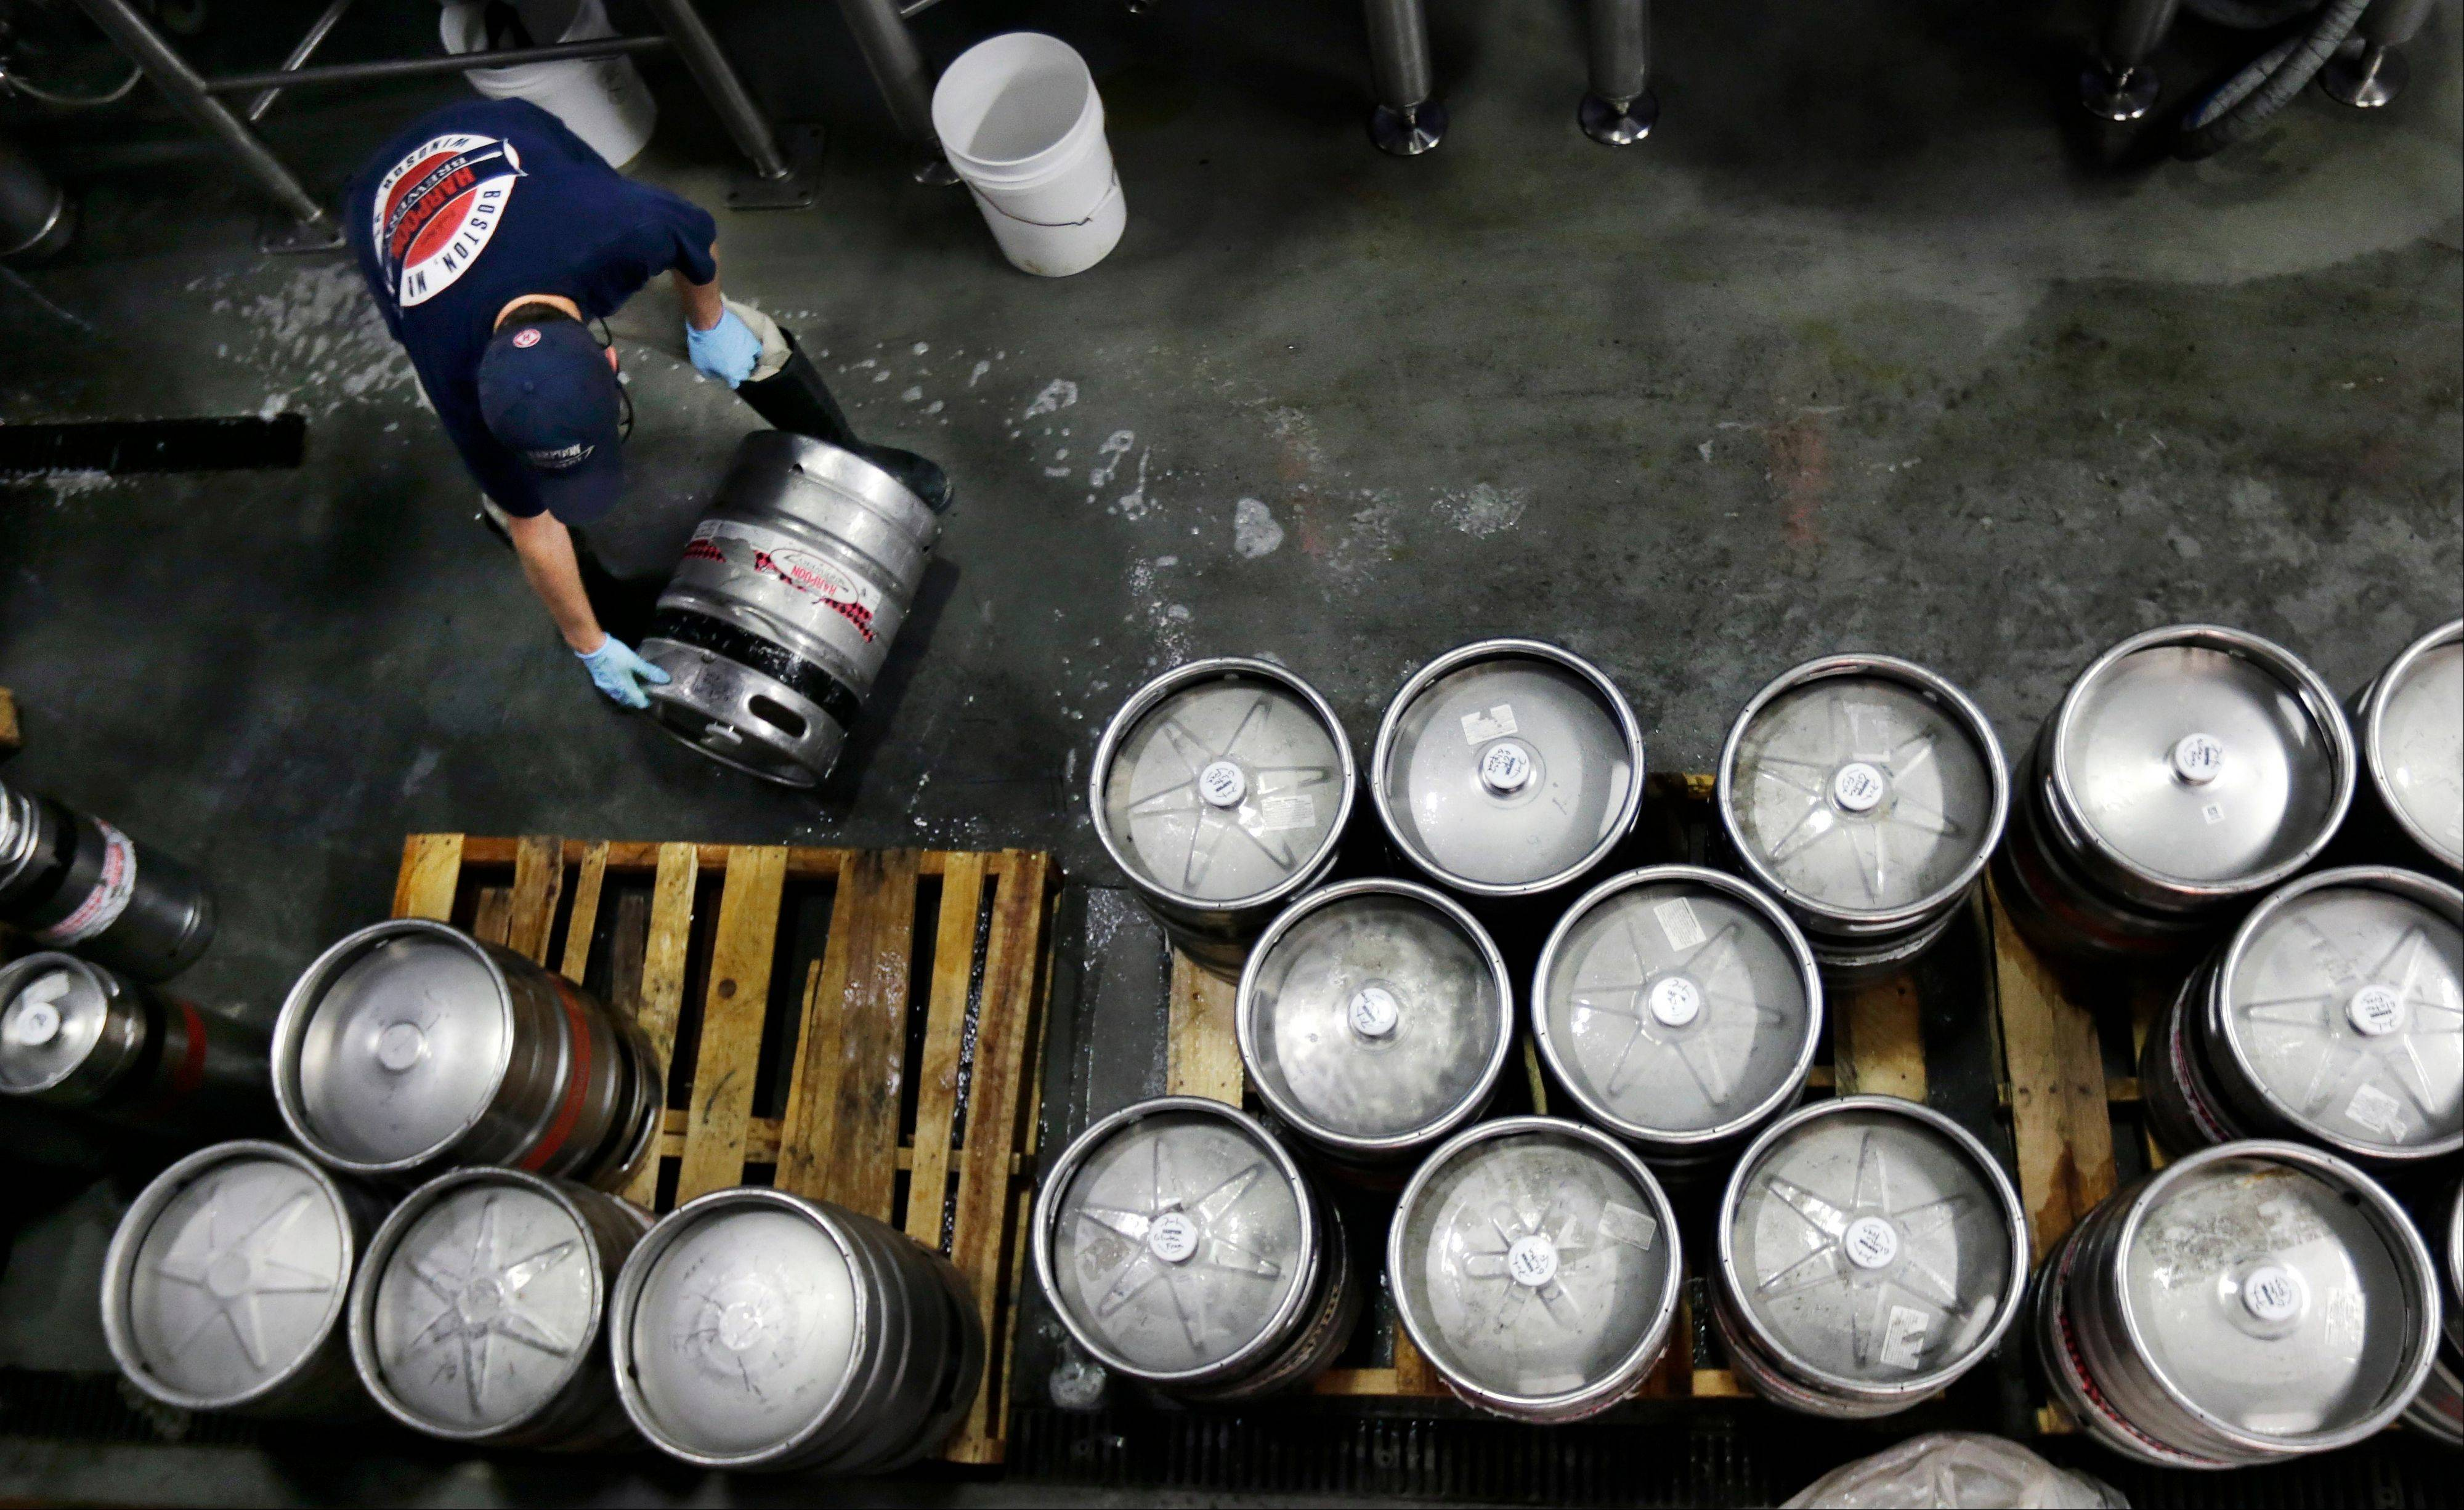 Associated Press/July 1, 2013 Brewer Ken Hermann rolls a fresh keg of beer onto pallets at the Harpoon Brewery in the Seaport District of Boston. The Commerce Department reported Friday on orders placed with U.S. factories in June rose 1.5 percent.